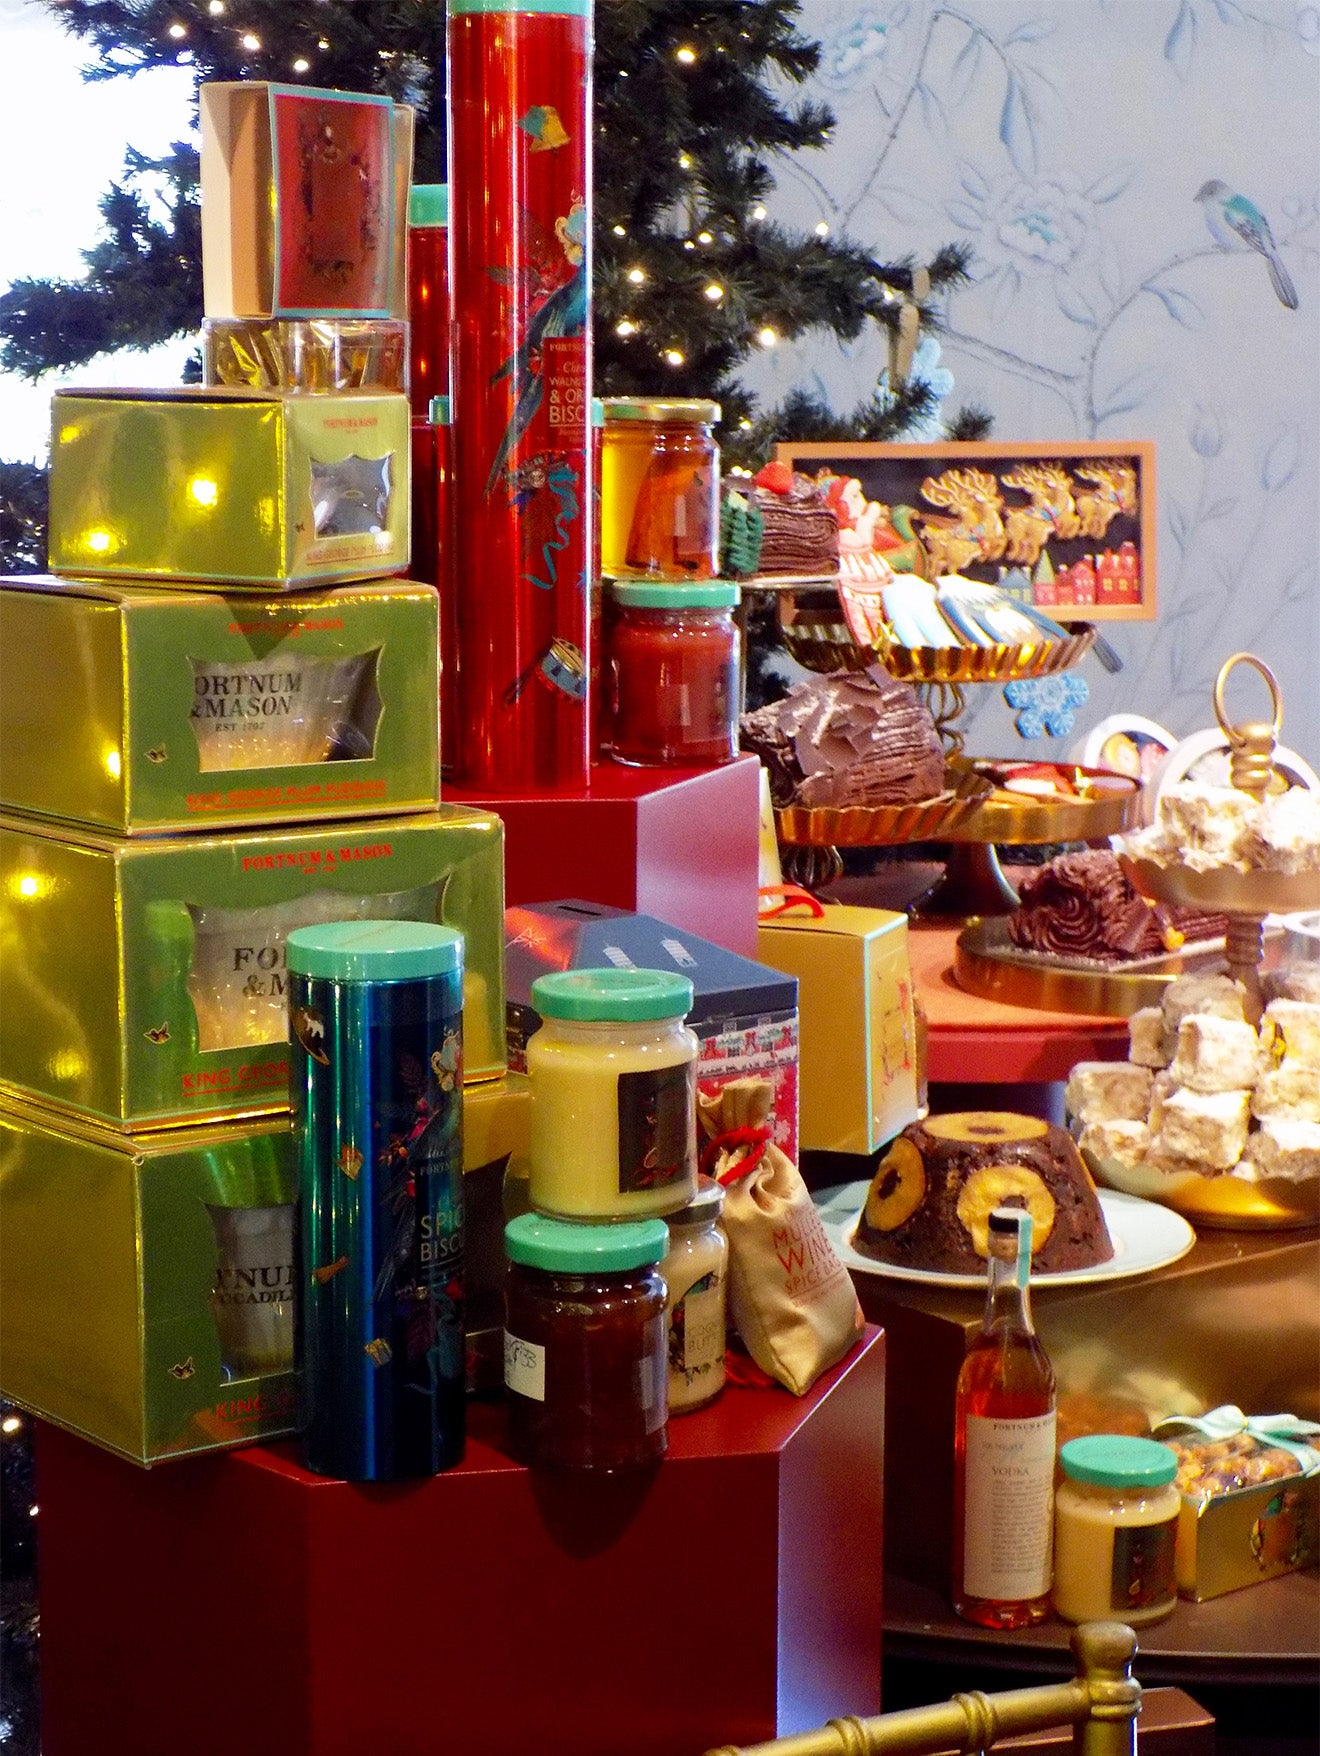 Fortnum & Mason Christmas gifts and food